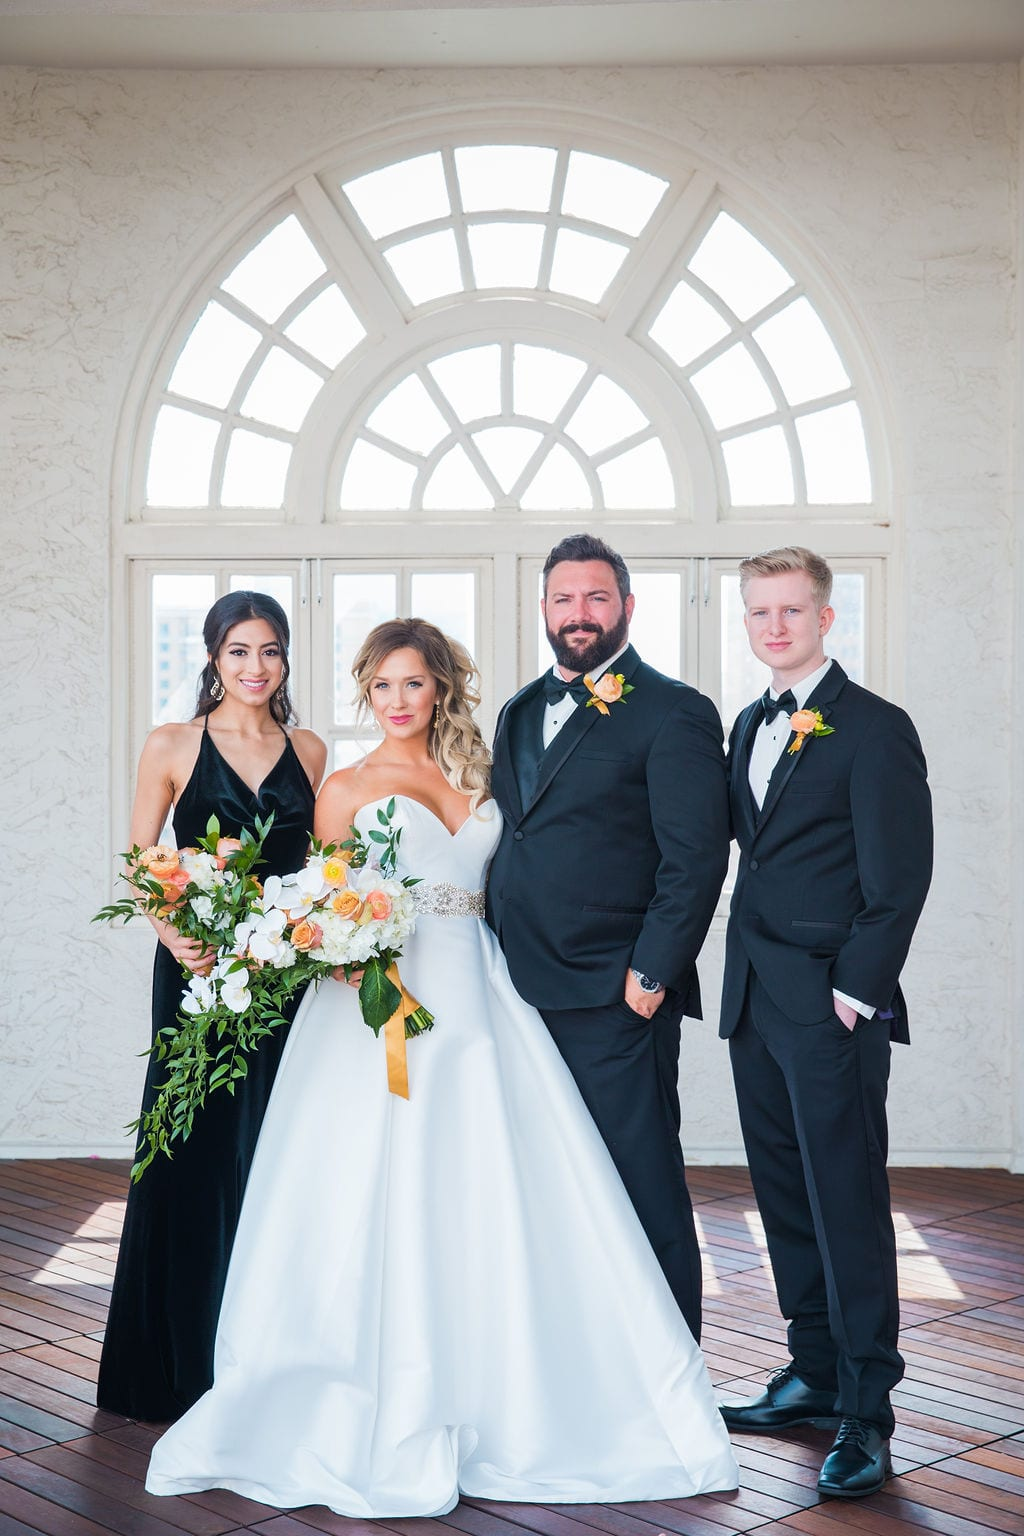 St Anthony Styled wedding groom and bride on wedding party